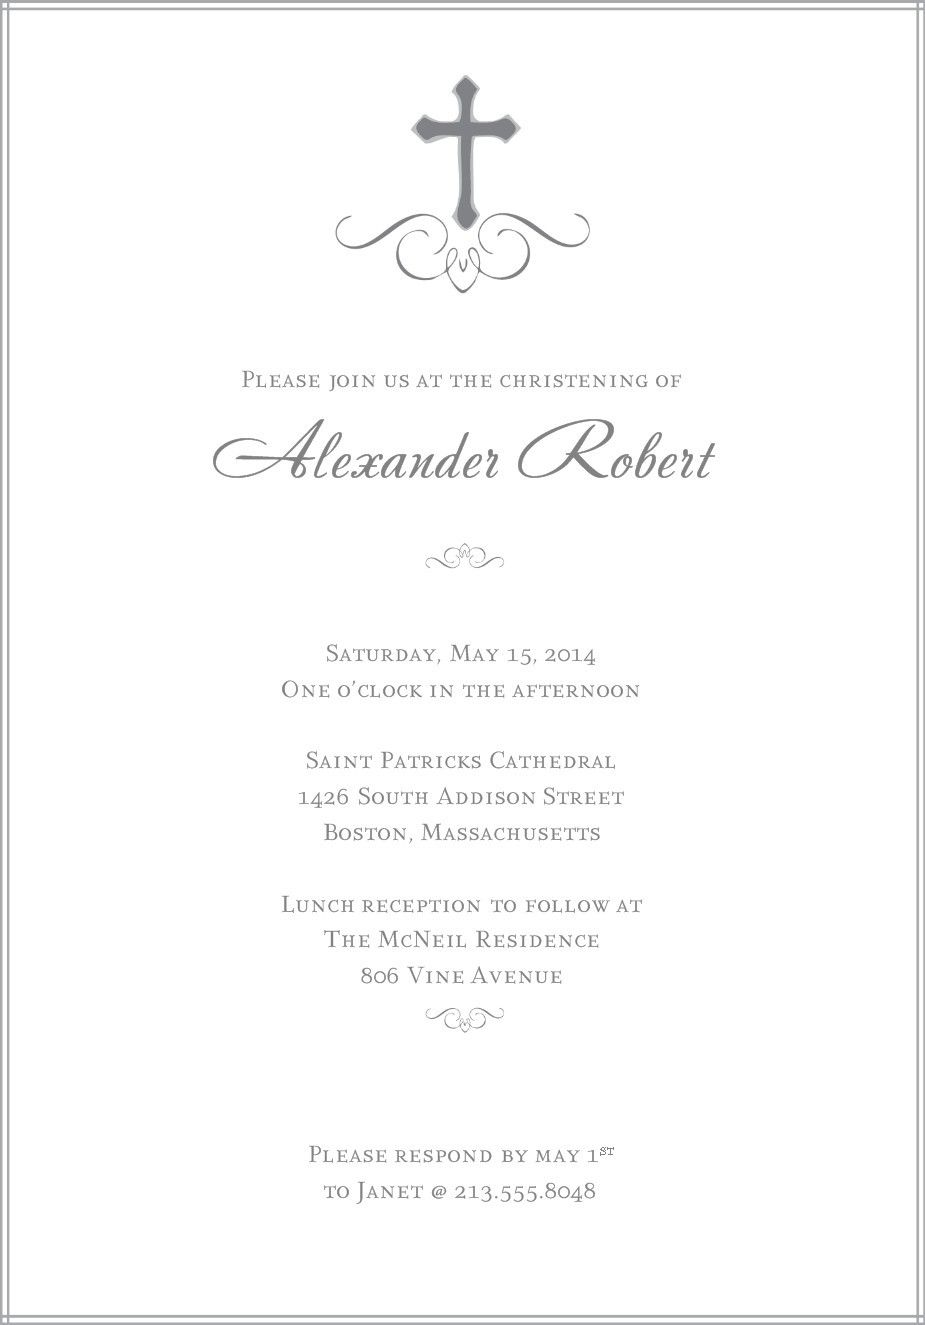 Baptism Invitations Templates Free Download Gracelyn 07 04 18